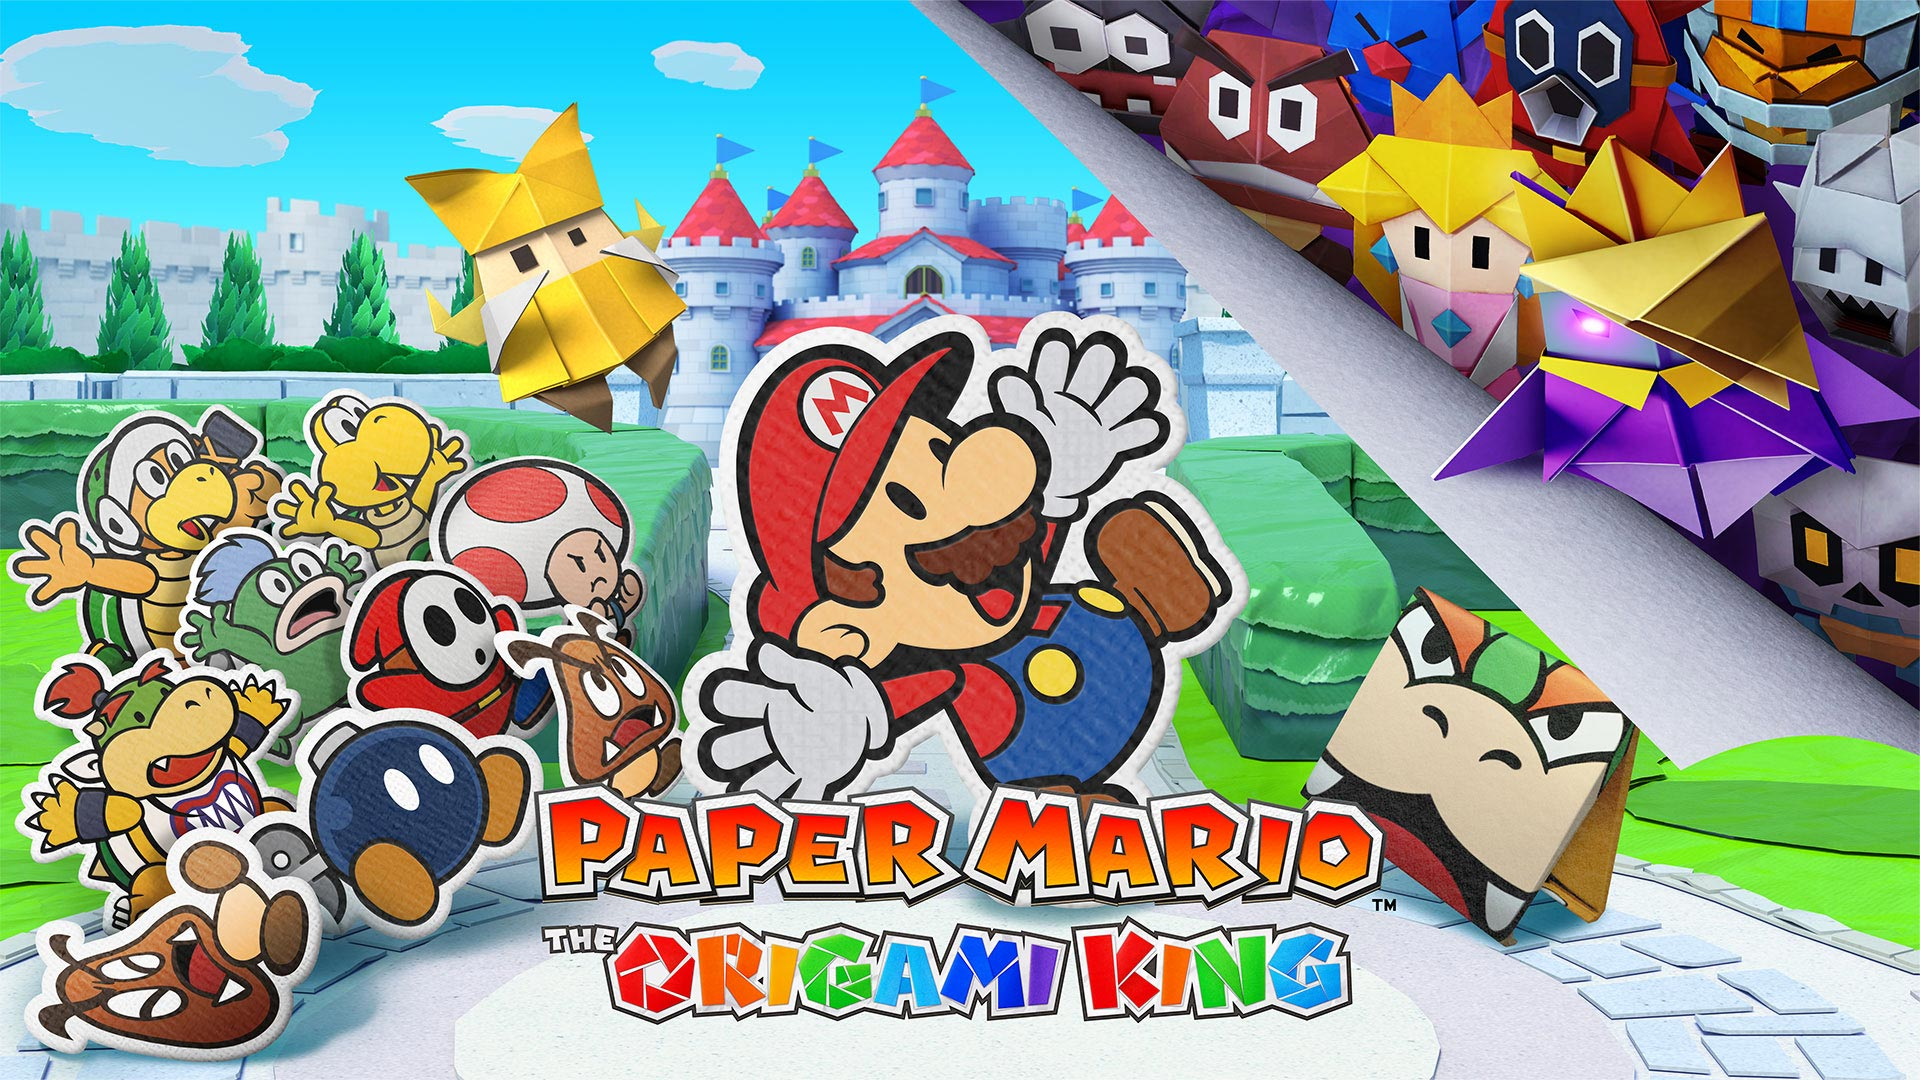 Paper Mario The Origami King incelemesi